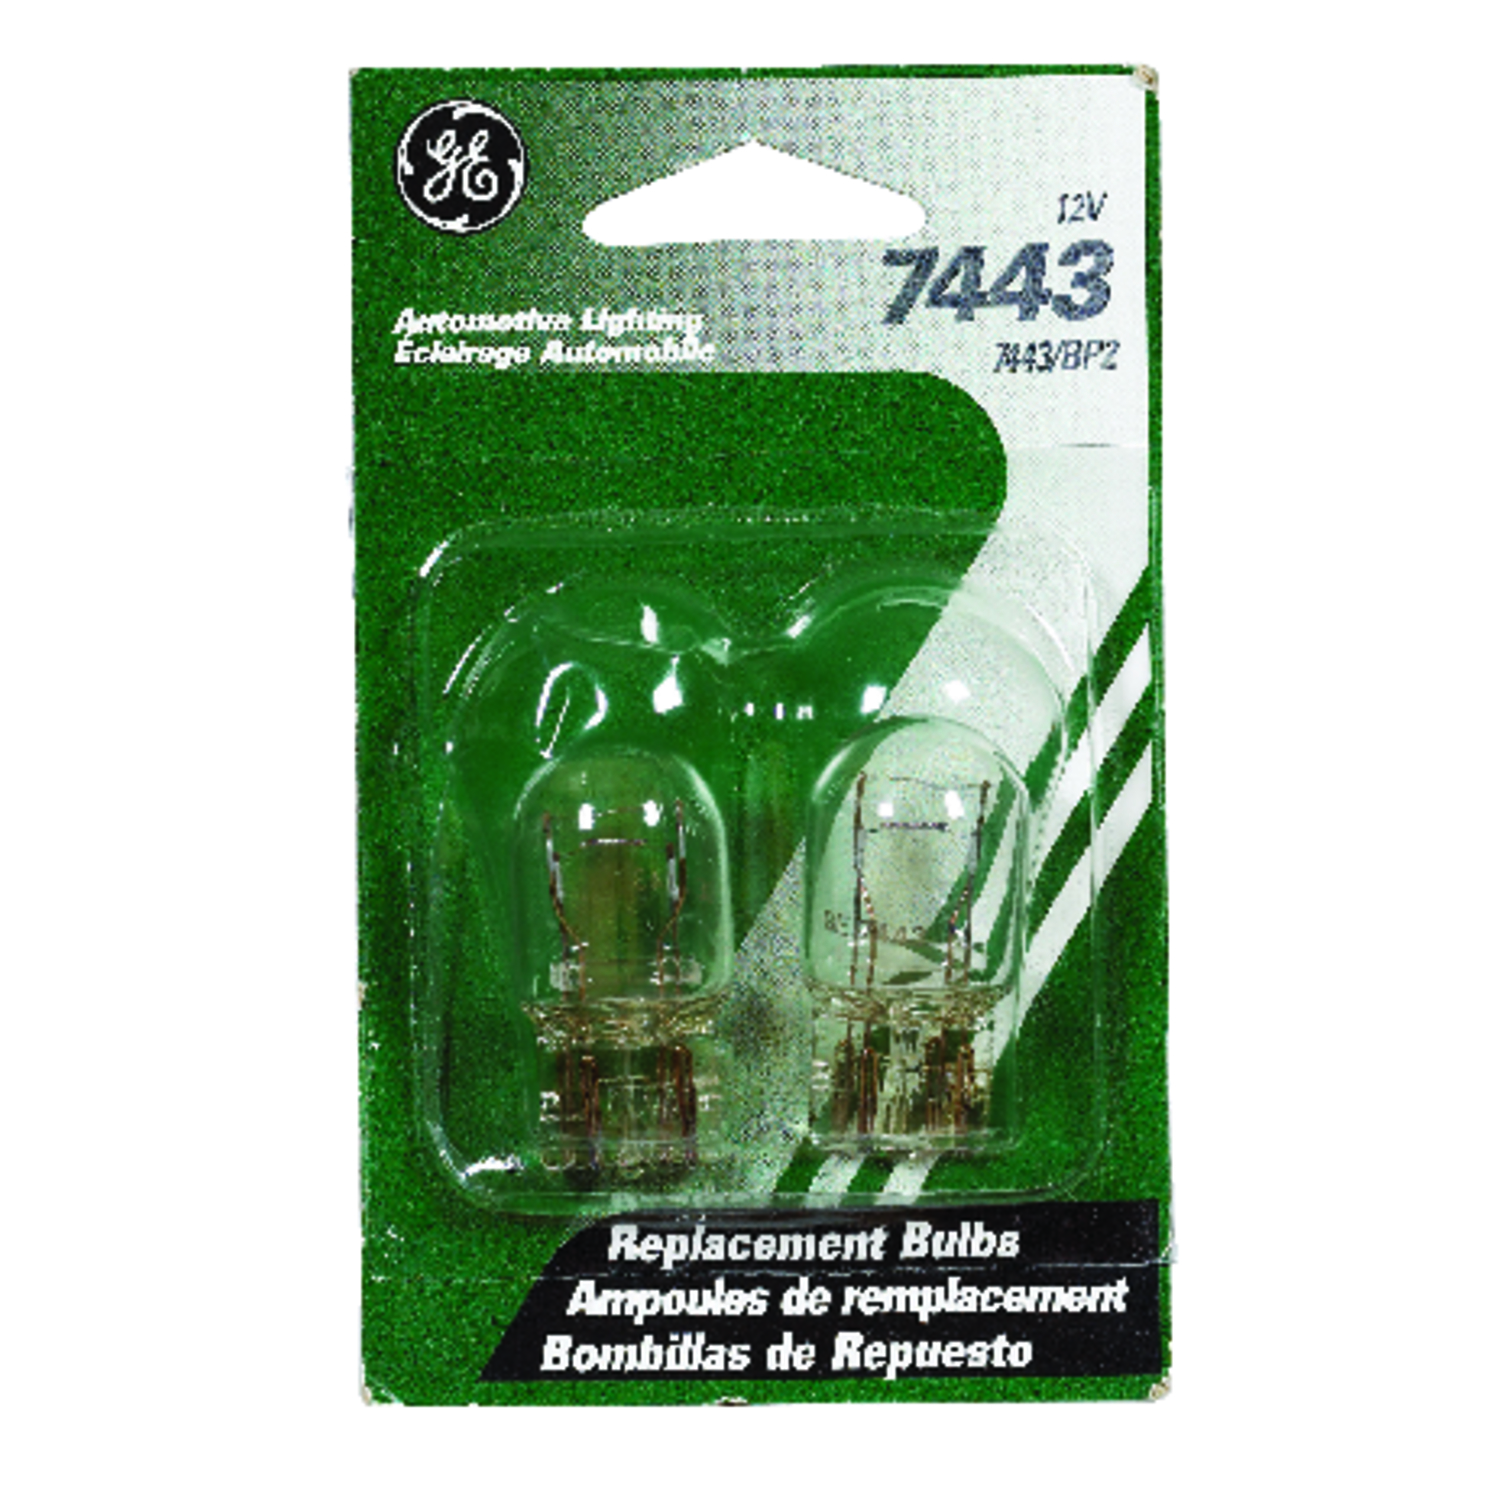 Eclairage 12 Volt Ge 12 Volt T7 Automotive Bulb 2 Pk 7443bp2 Ace Hardware